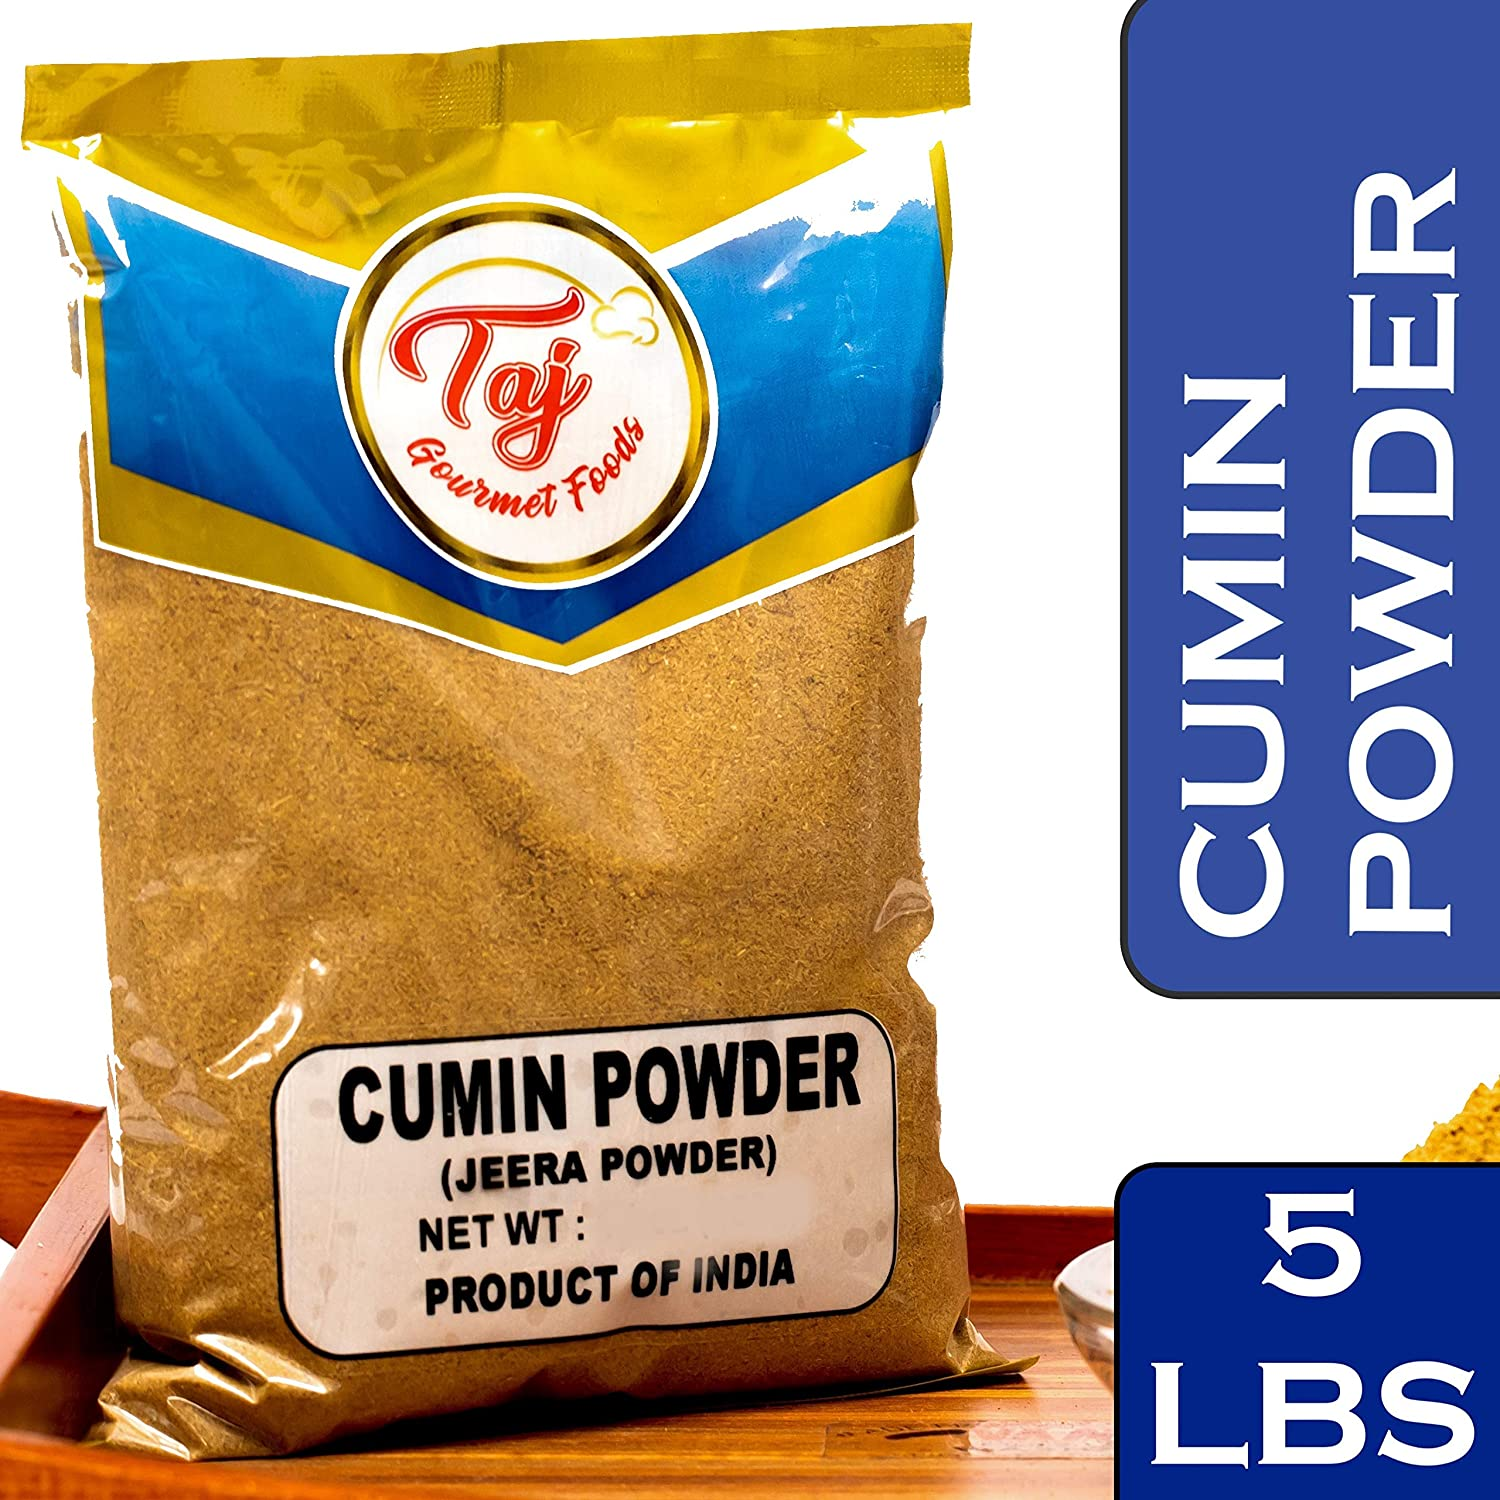 TAJ Premium Indian Cumin Powder, Jeera Ground, (5-Pounds)